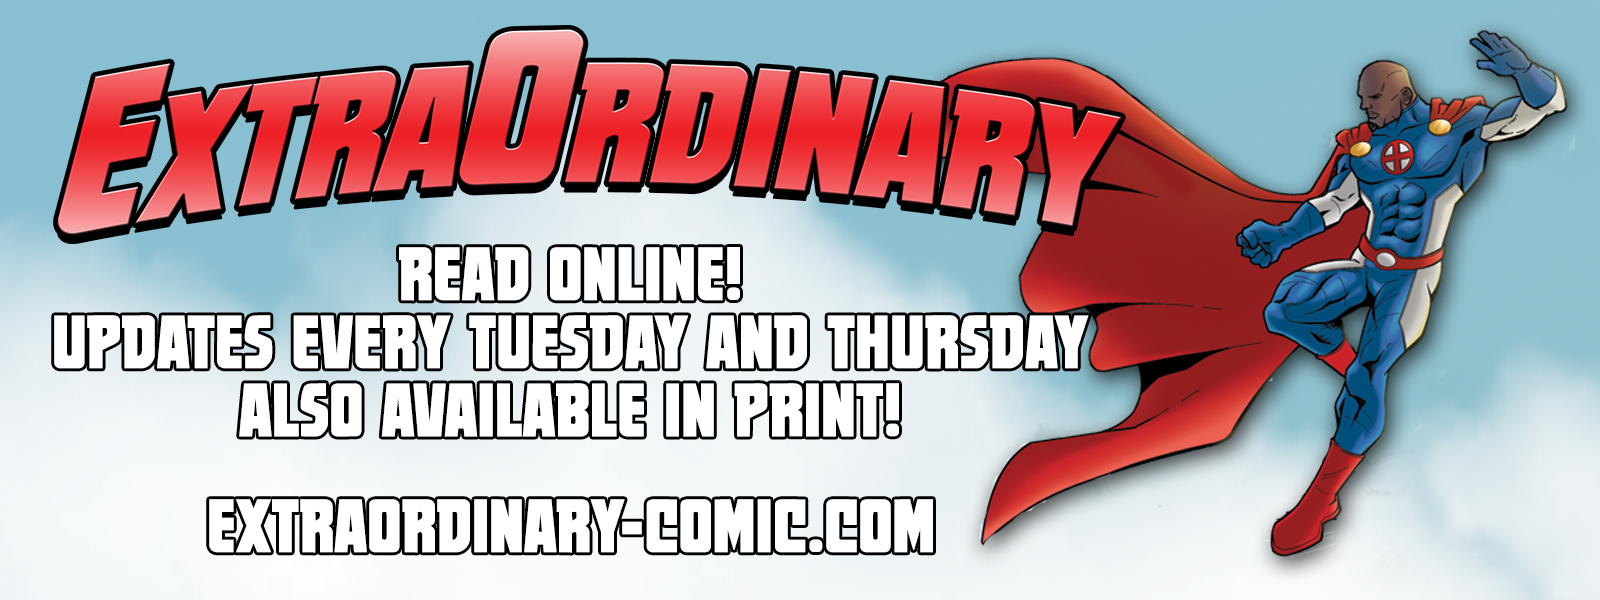 ExtraOrdinary has arrived!